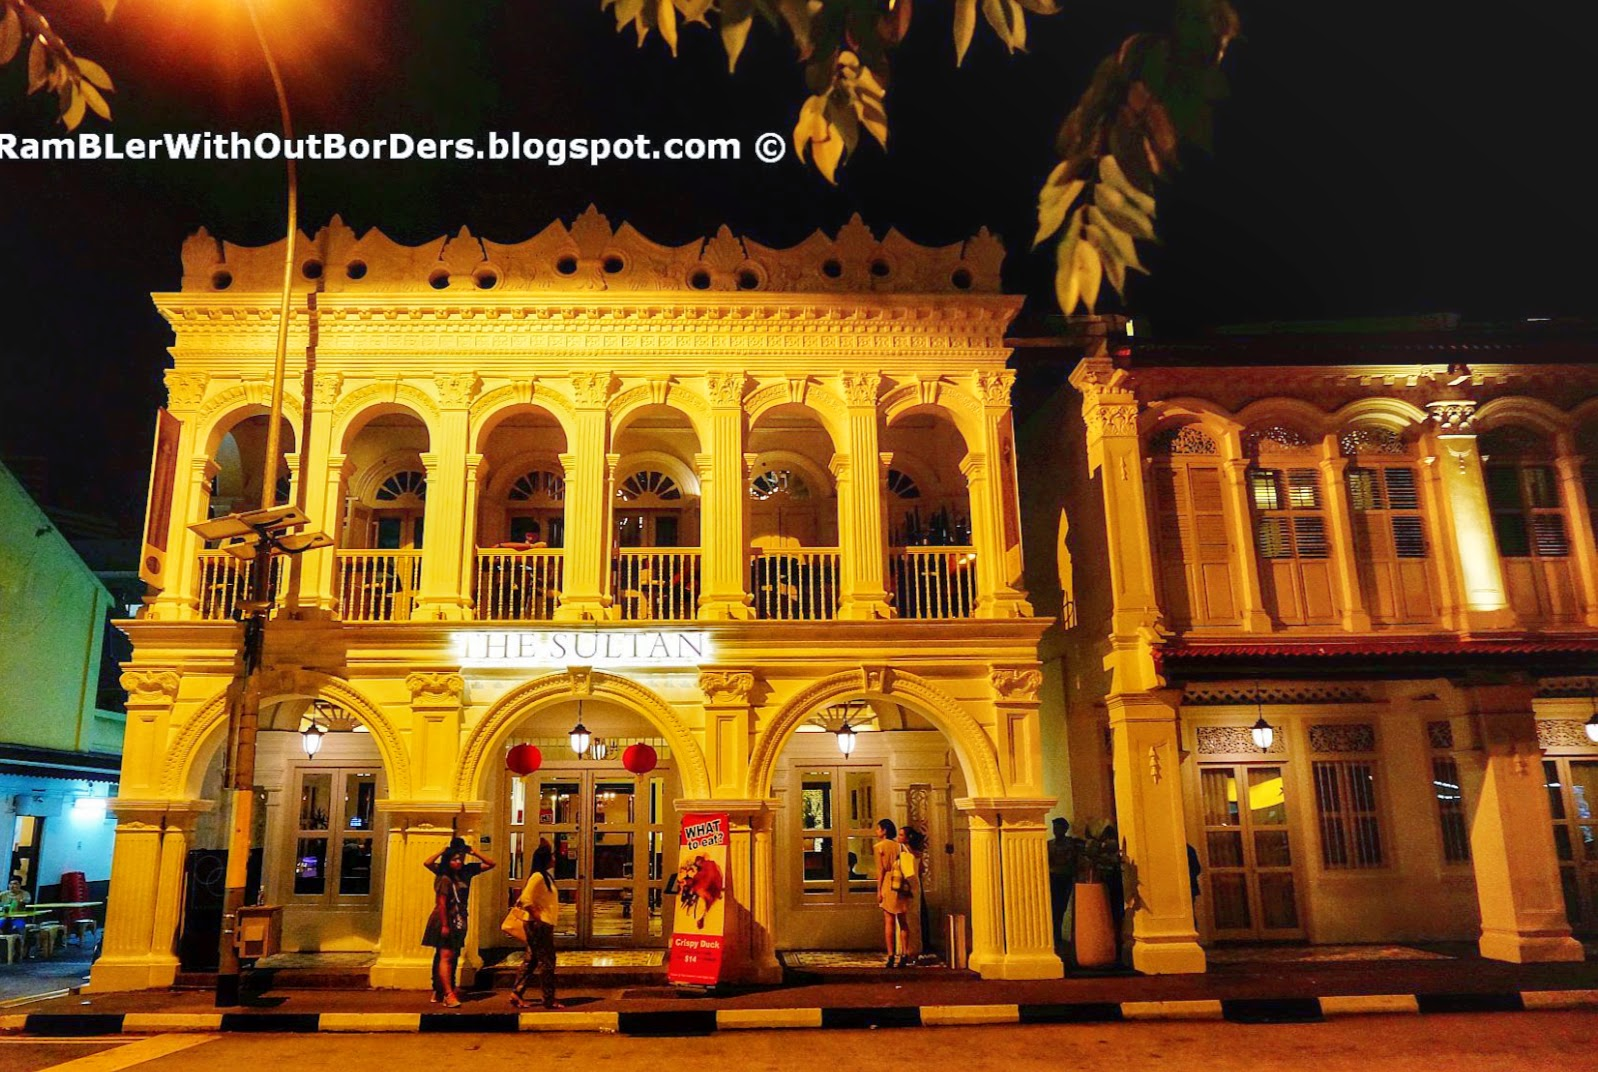 The Sultan Hotel, Kampong Glam, Singapore